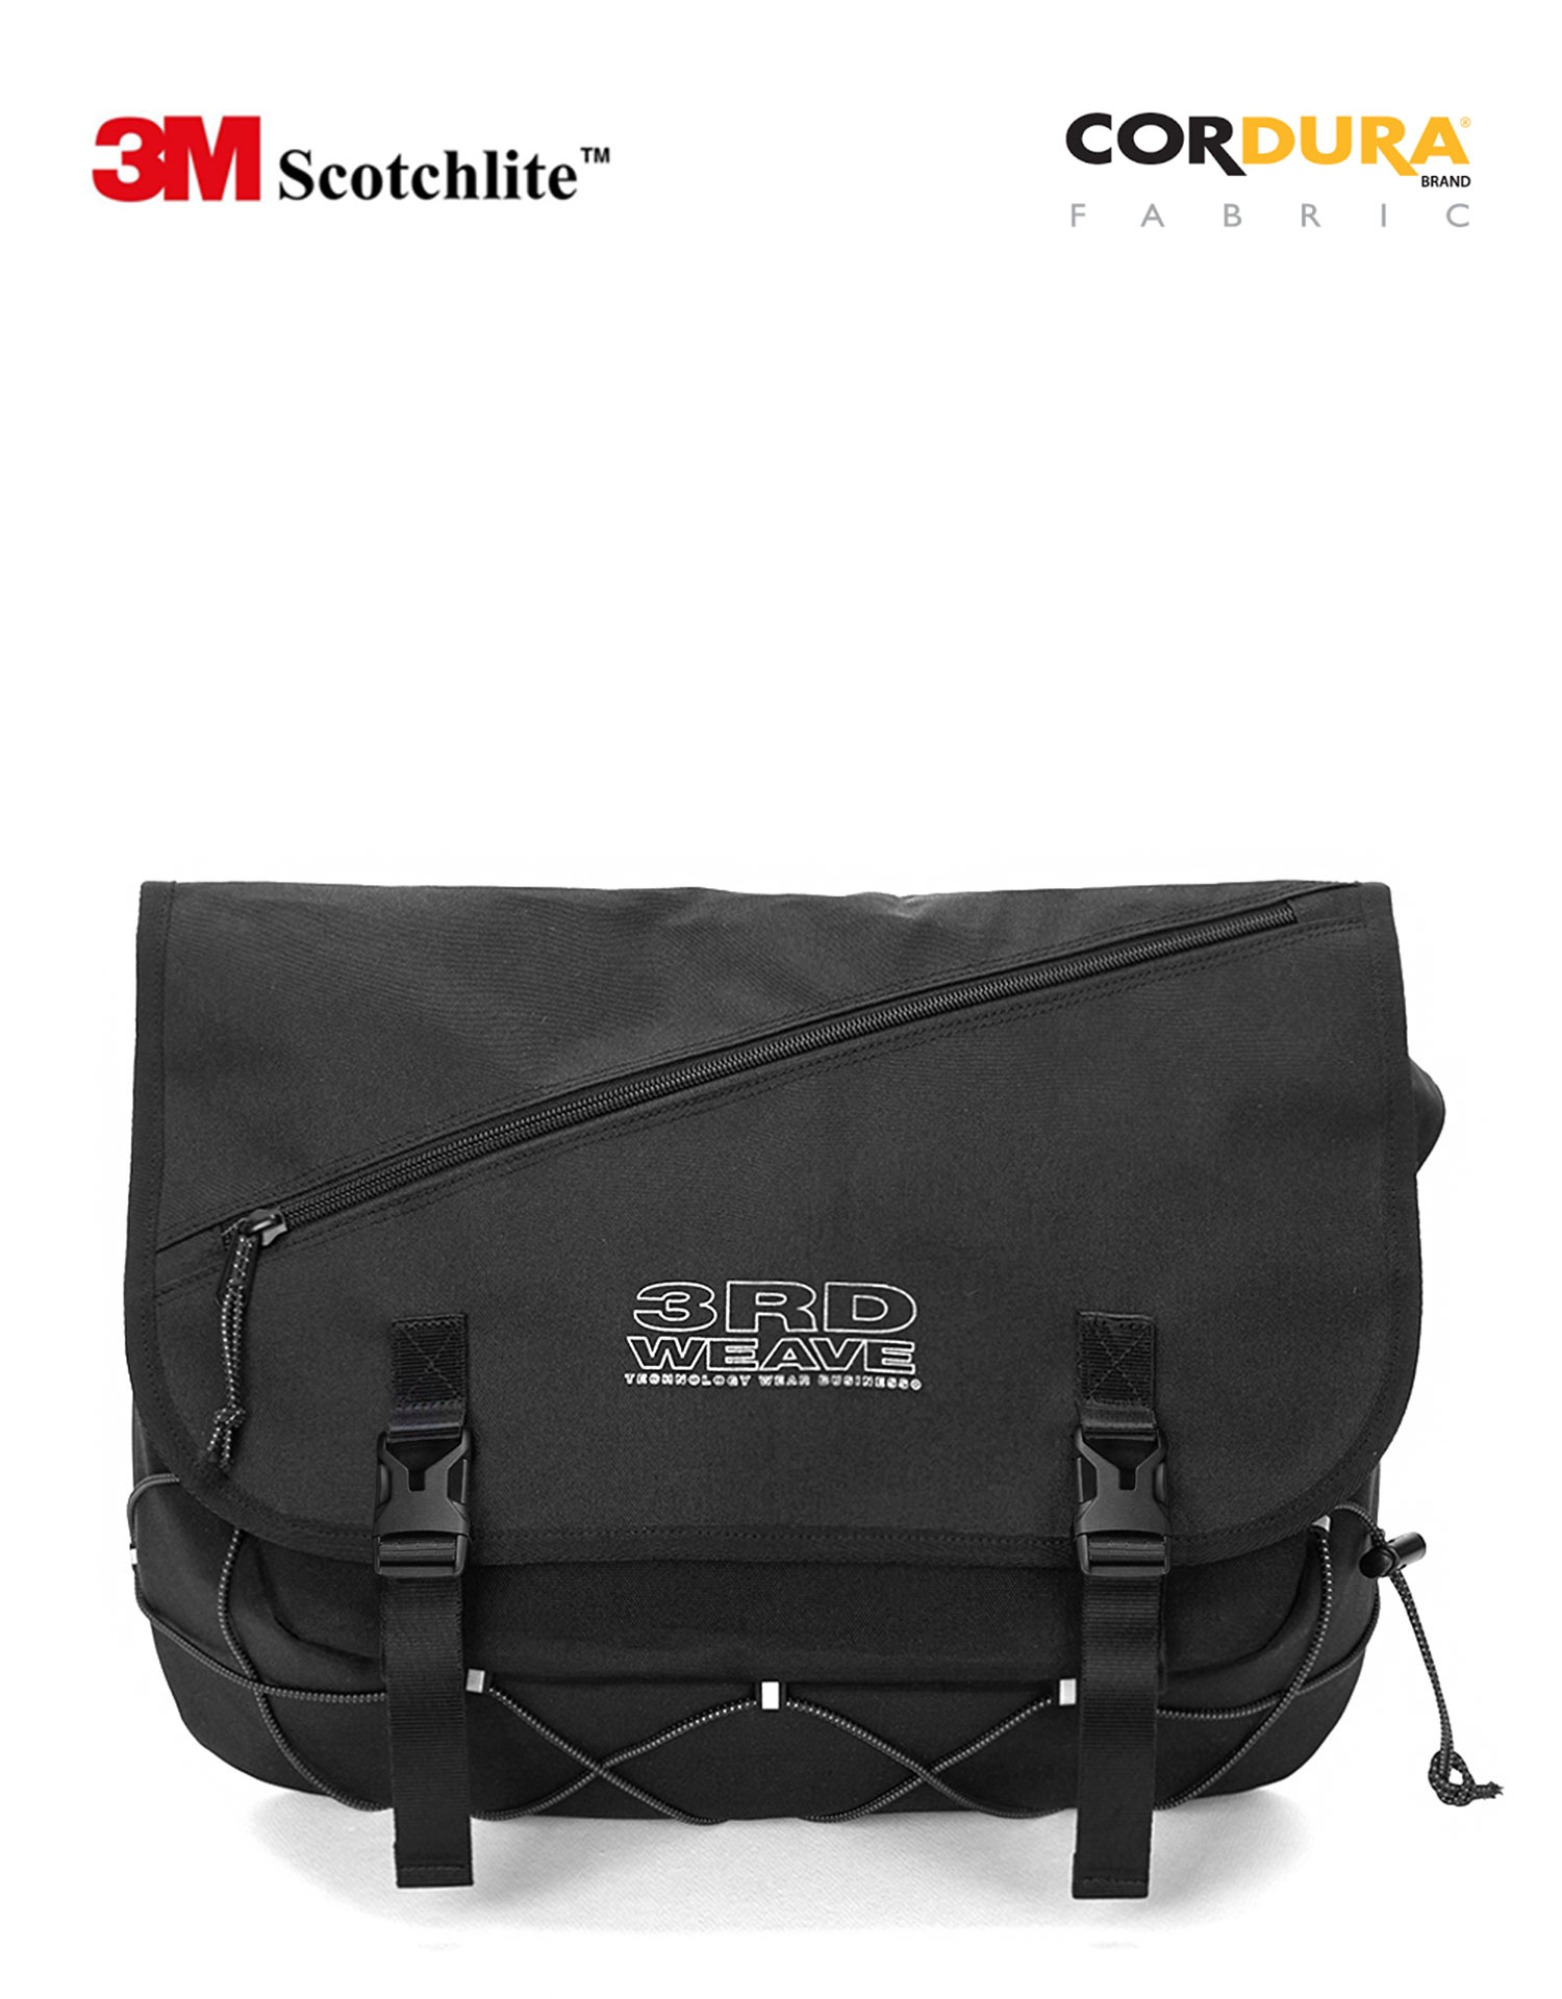 SCOTCH MESSENGER BAG / BLACK-SCOTCH